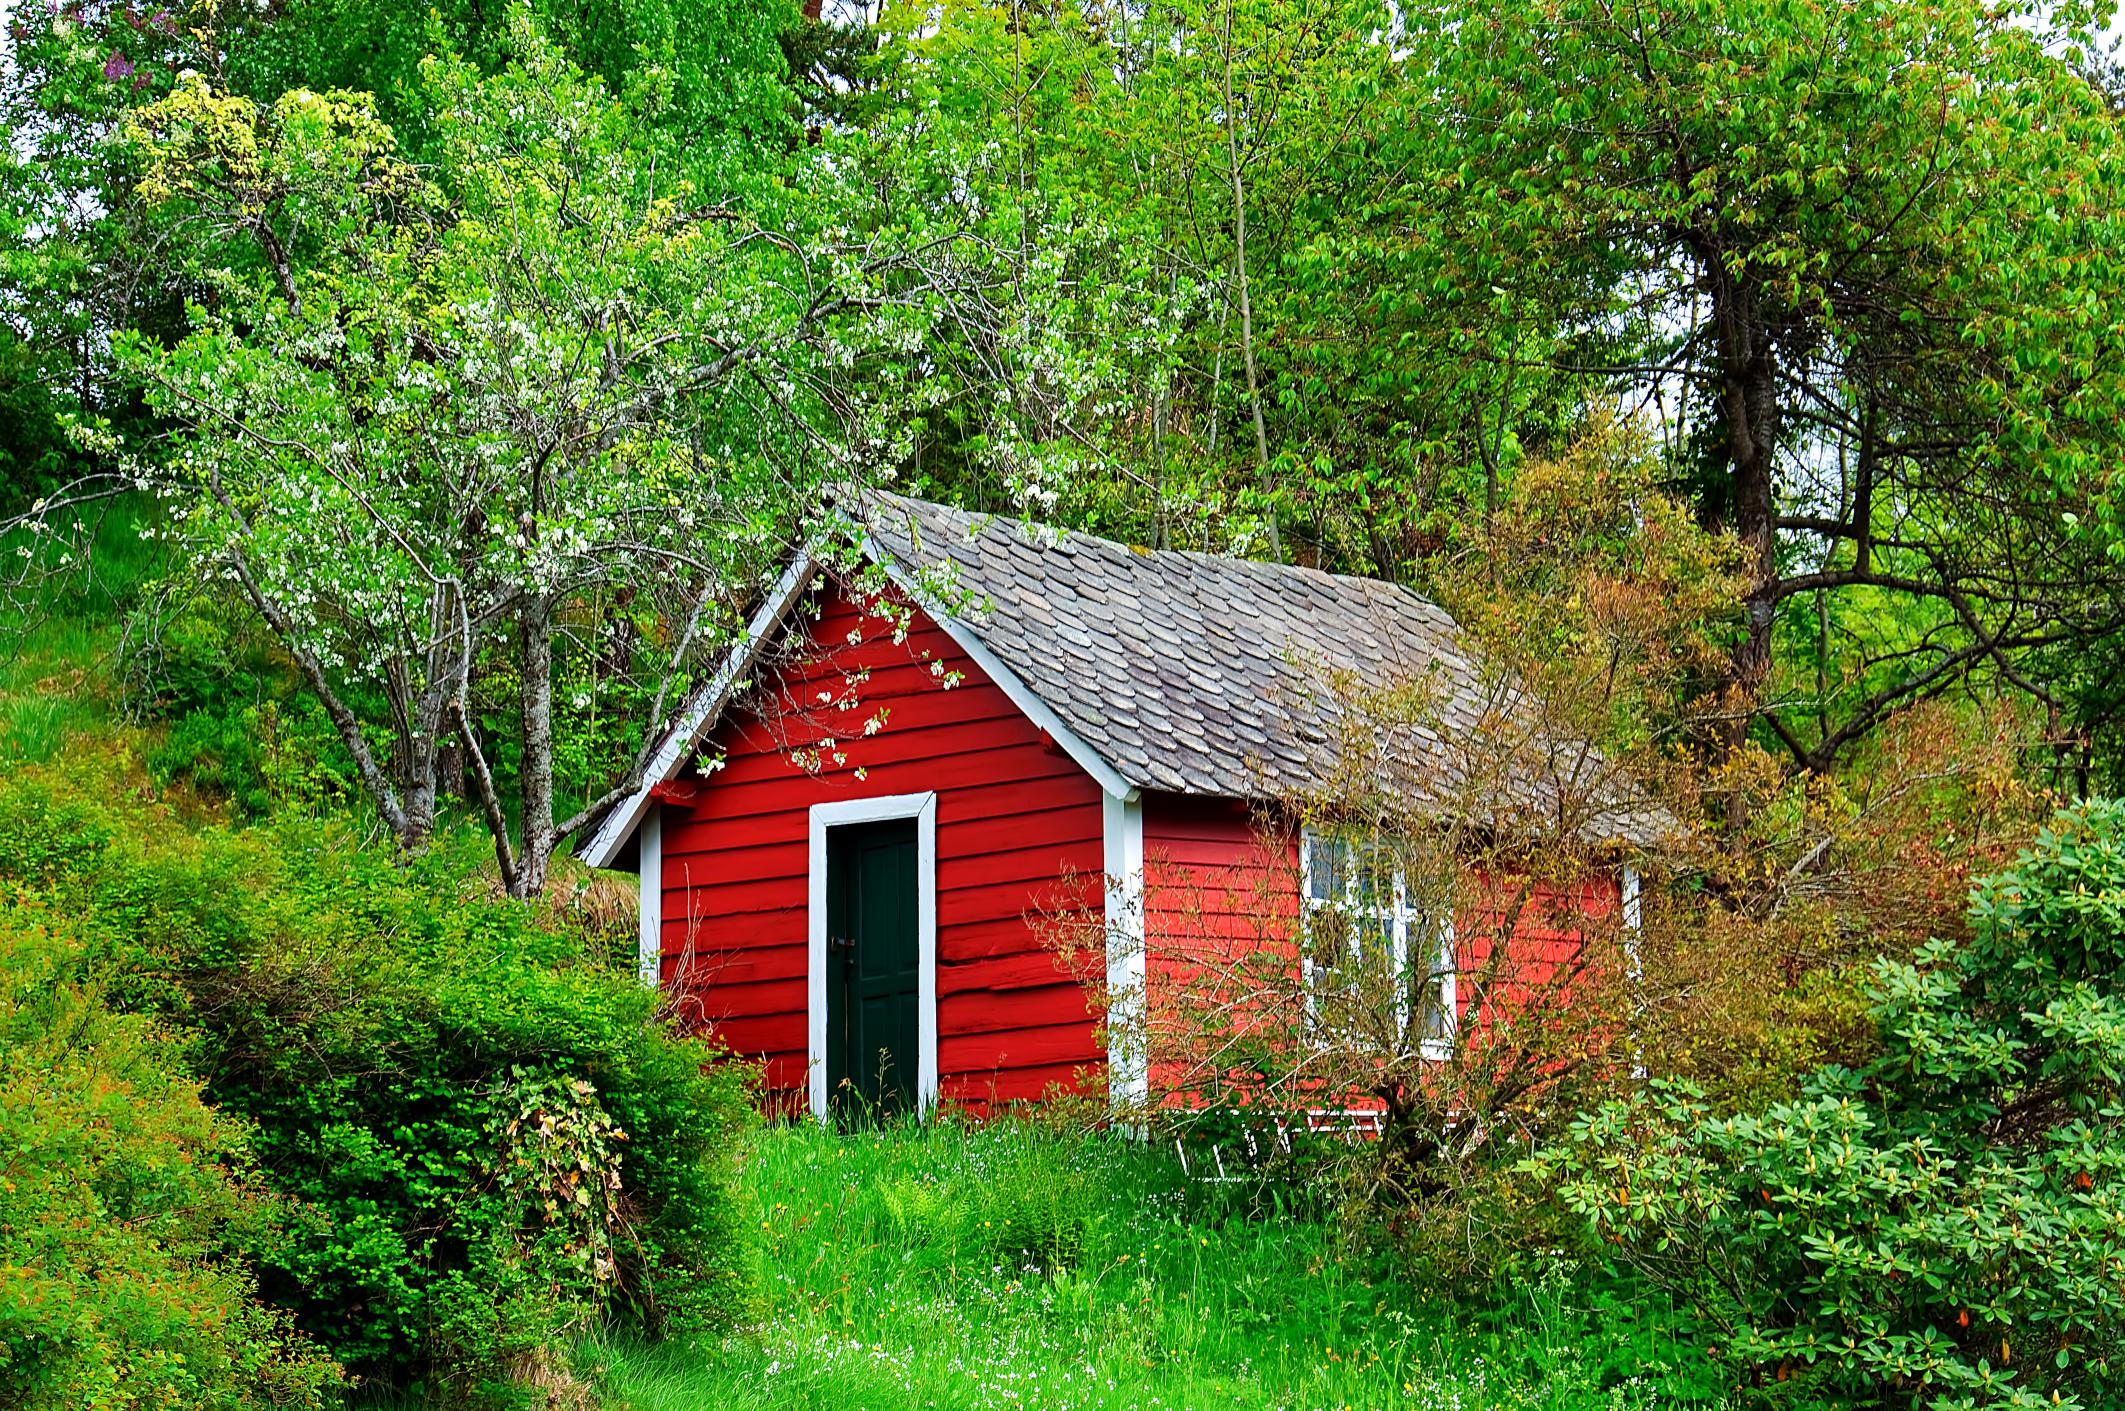 Red and white wooden garden shed for storage